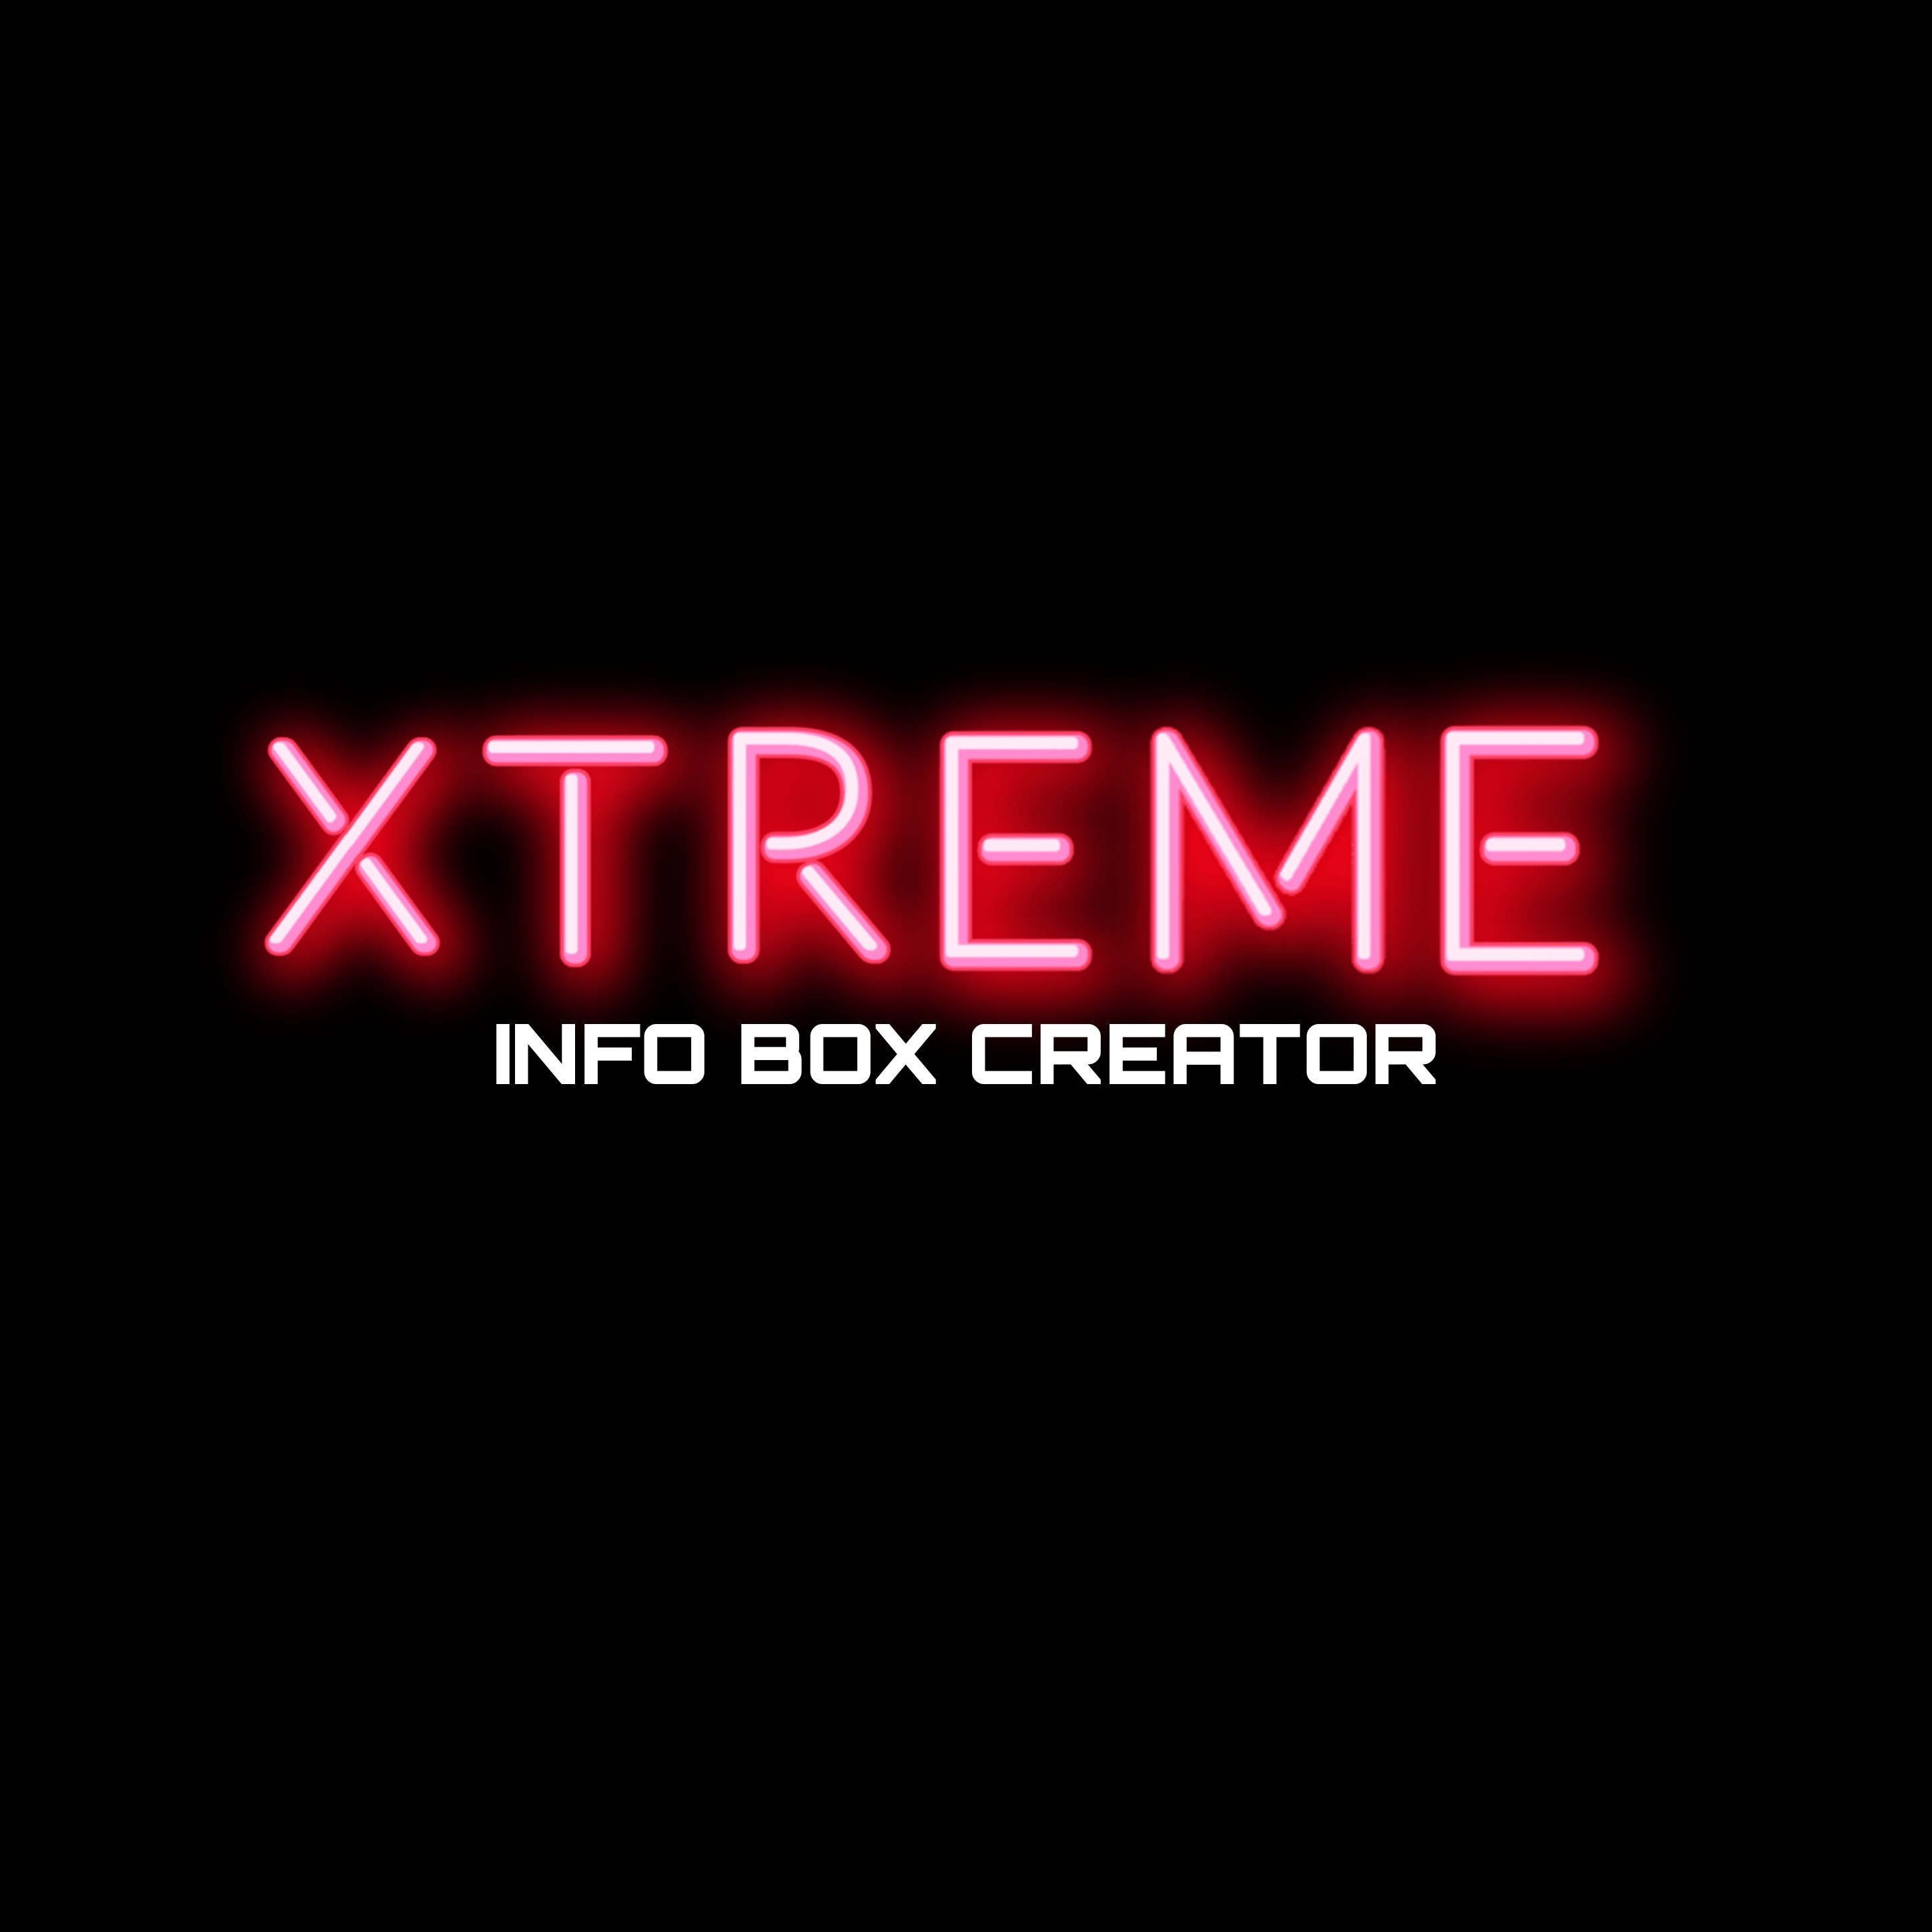 Xtreme Info Box Creator can help to create little box of information (i.e. hints, tips, tricks)